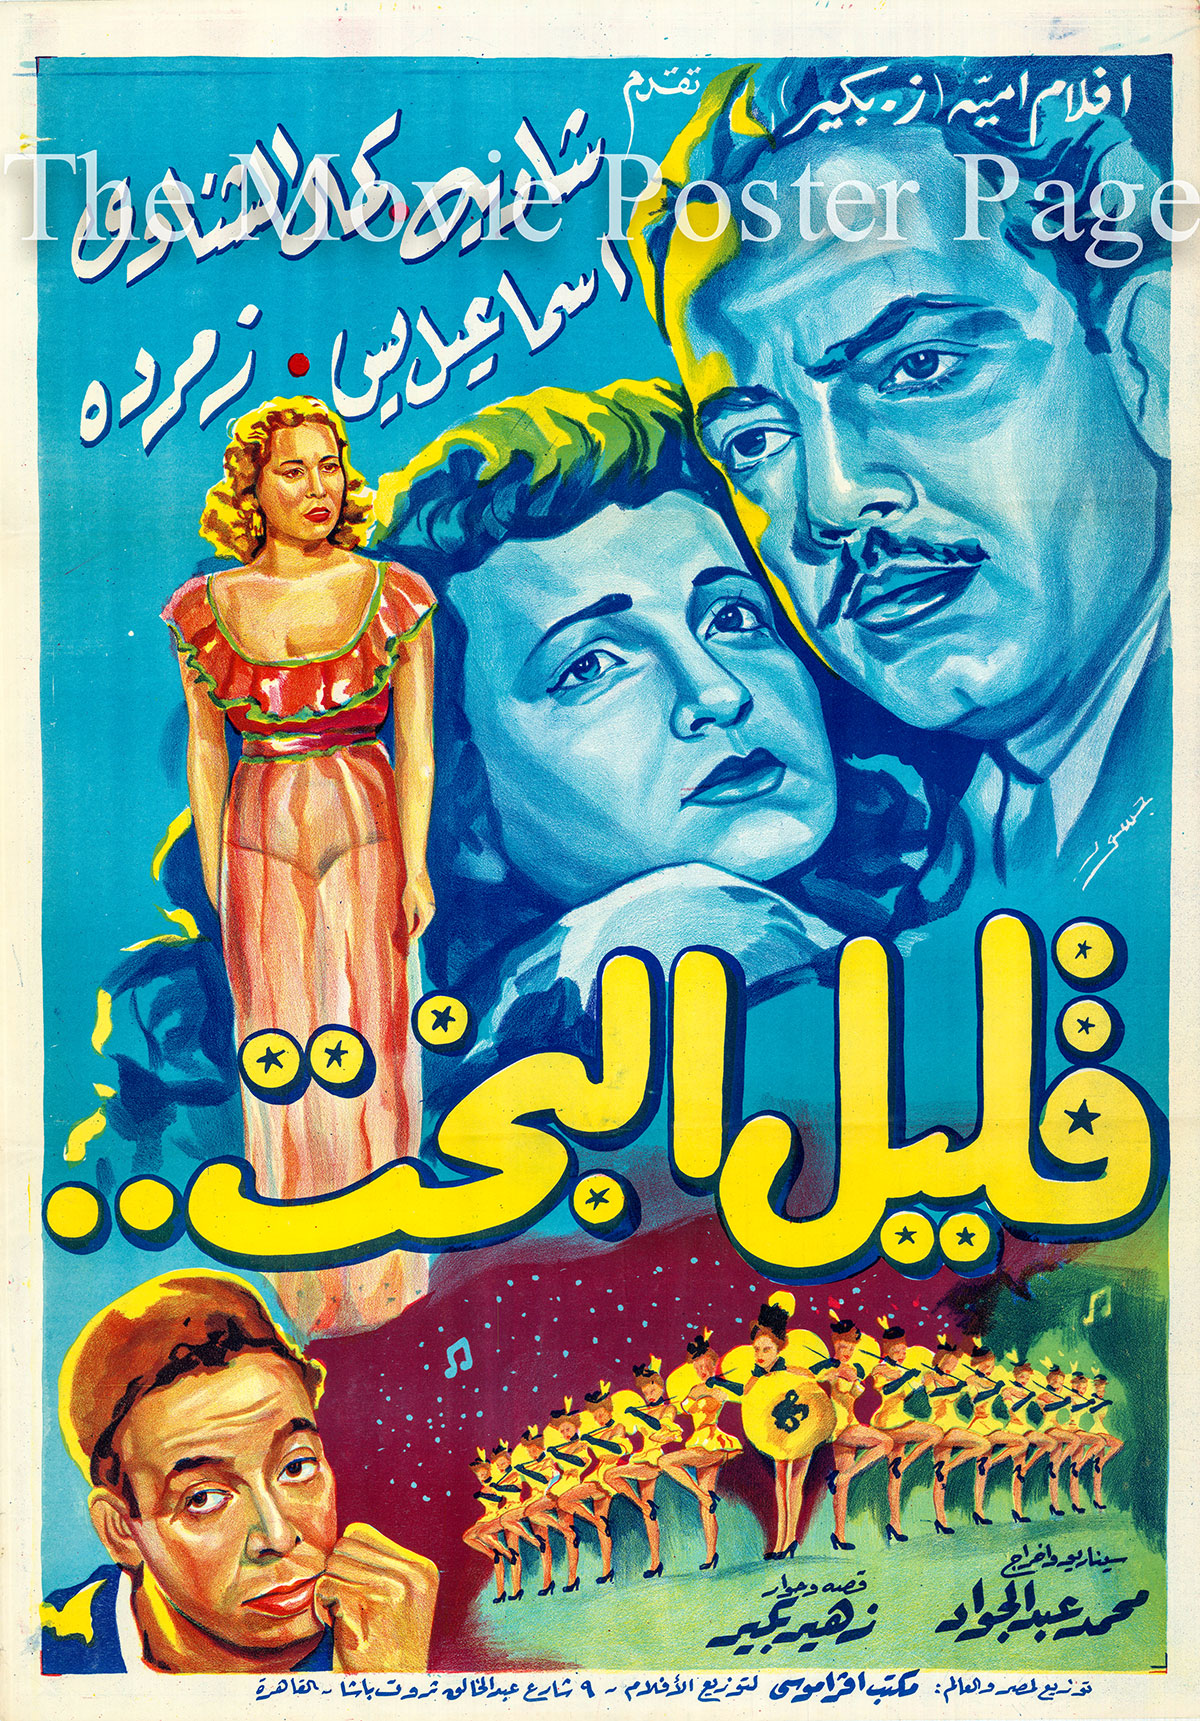 Pictured is an Egyptian promotional poster for the 1952 Mohamed Abdel Gawad film The Unlucky One starring Shadia.